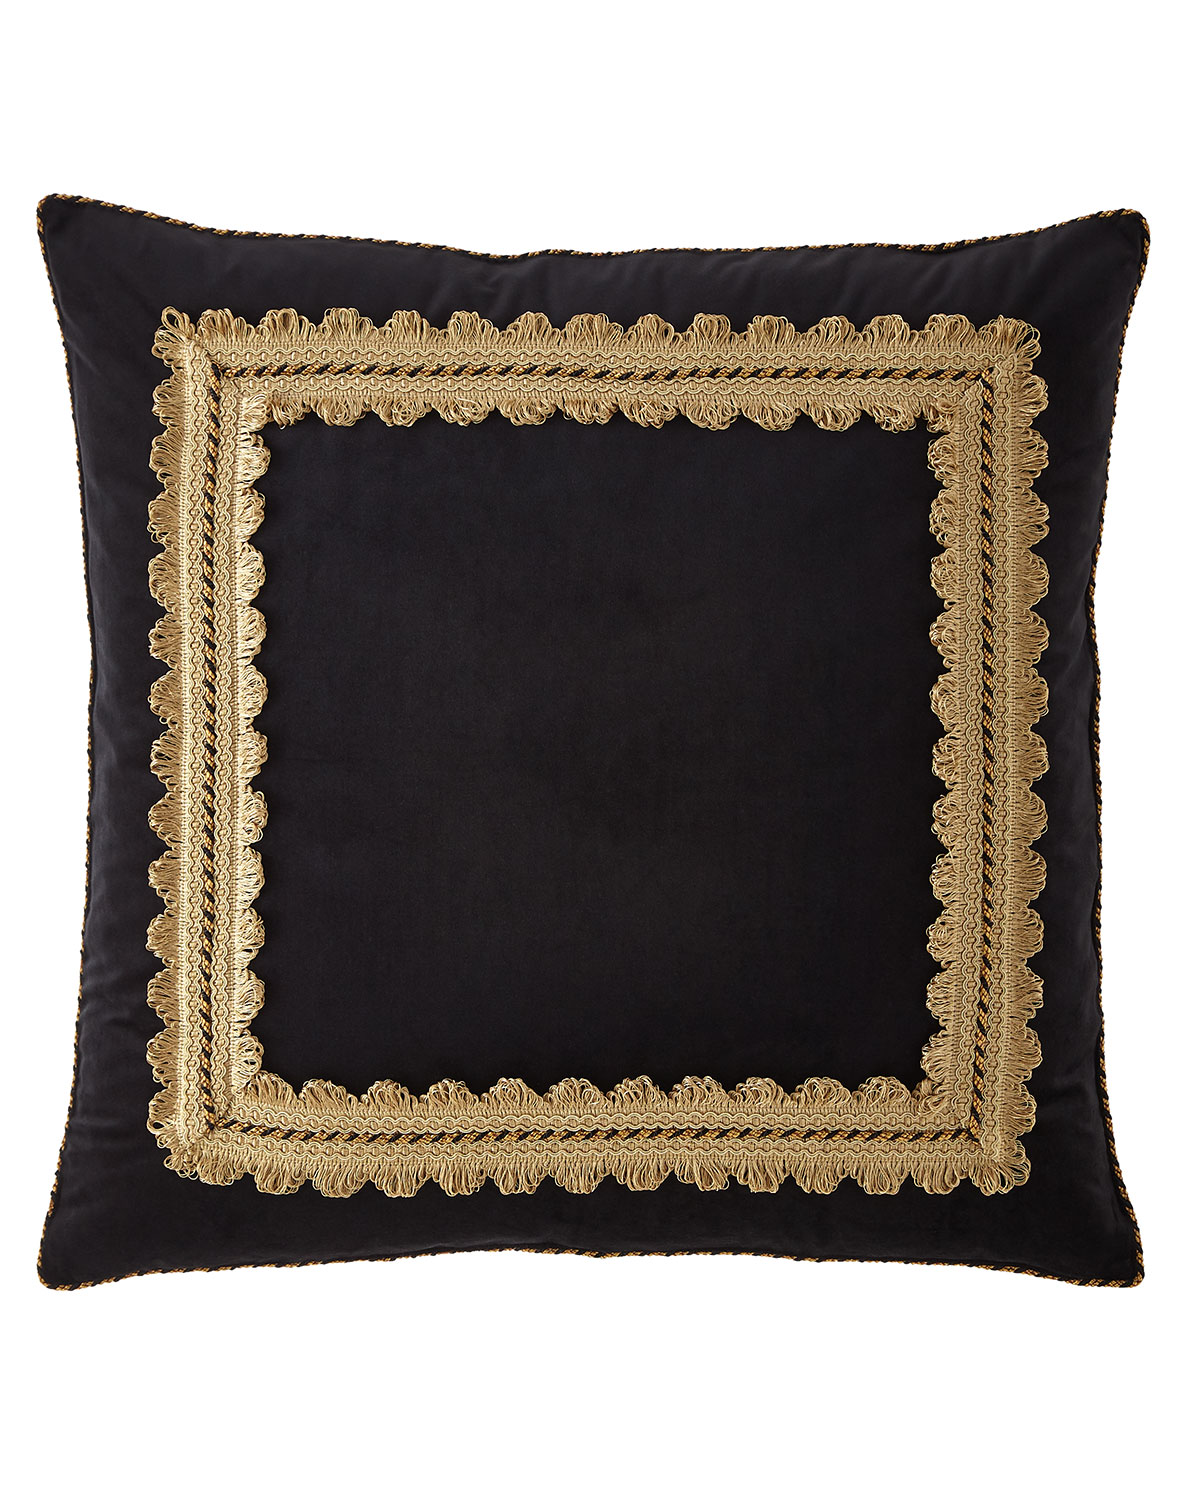 Sweet Dreams Midnight Framed Velvet European Sham